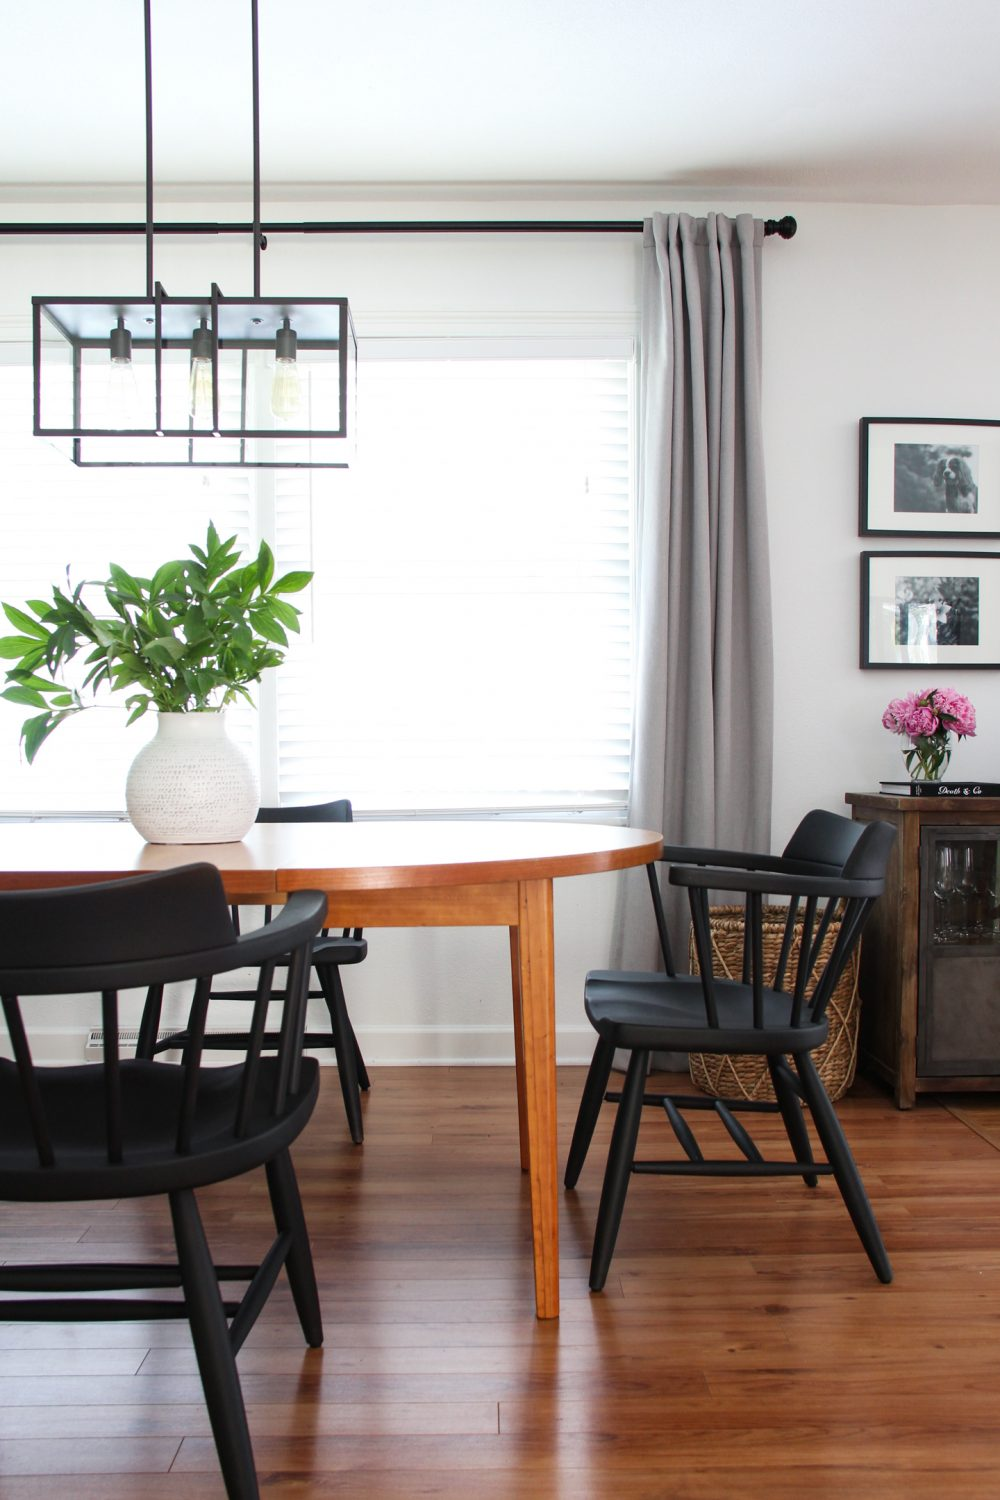 Black spindle chairs in dining room | Melissa Lynch | melissalynch.com